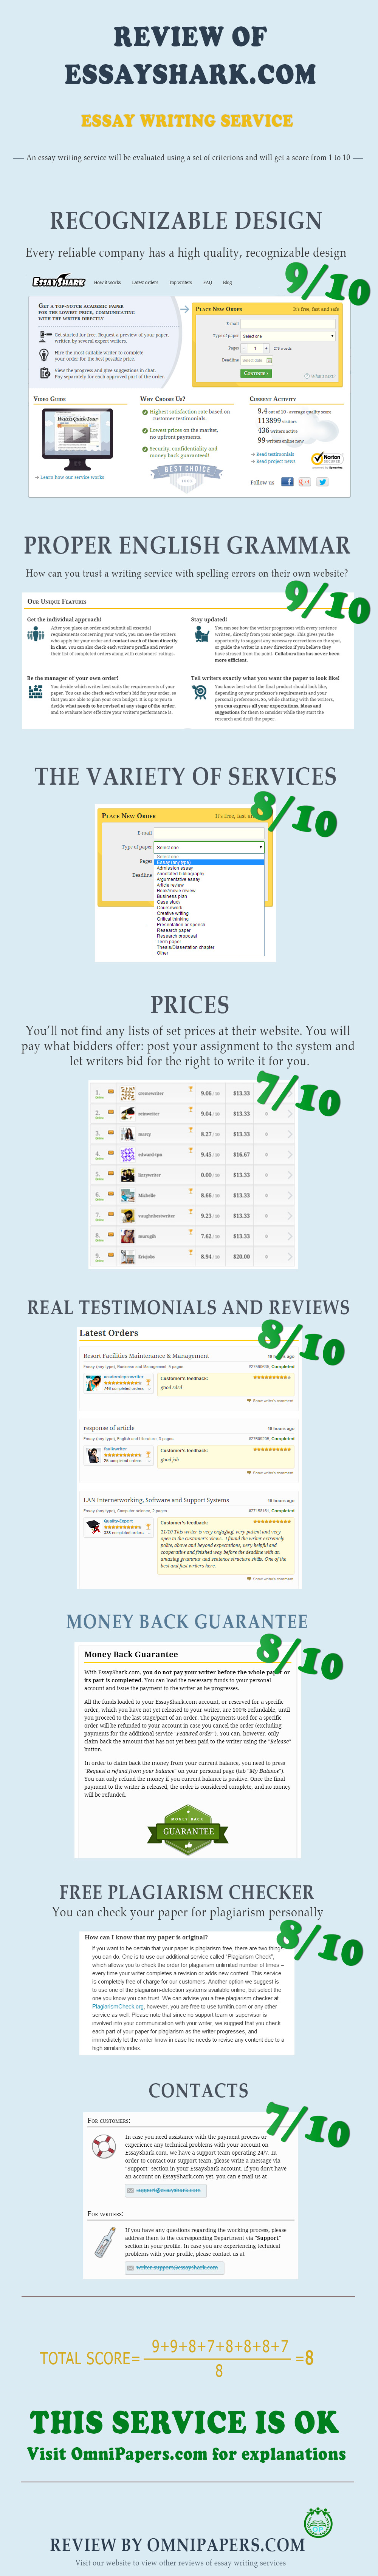 essayshark com review score 8 10 true sample available infographic review of essayshark com